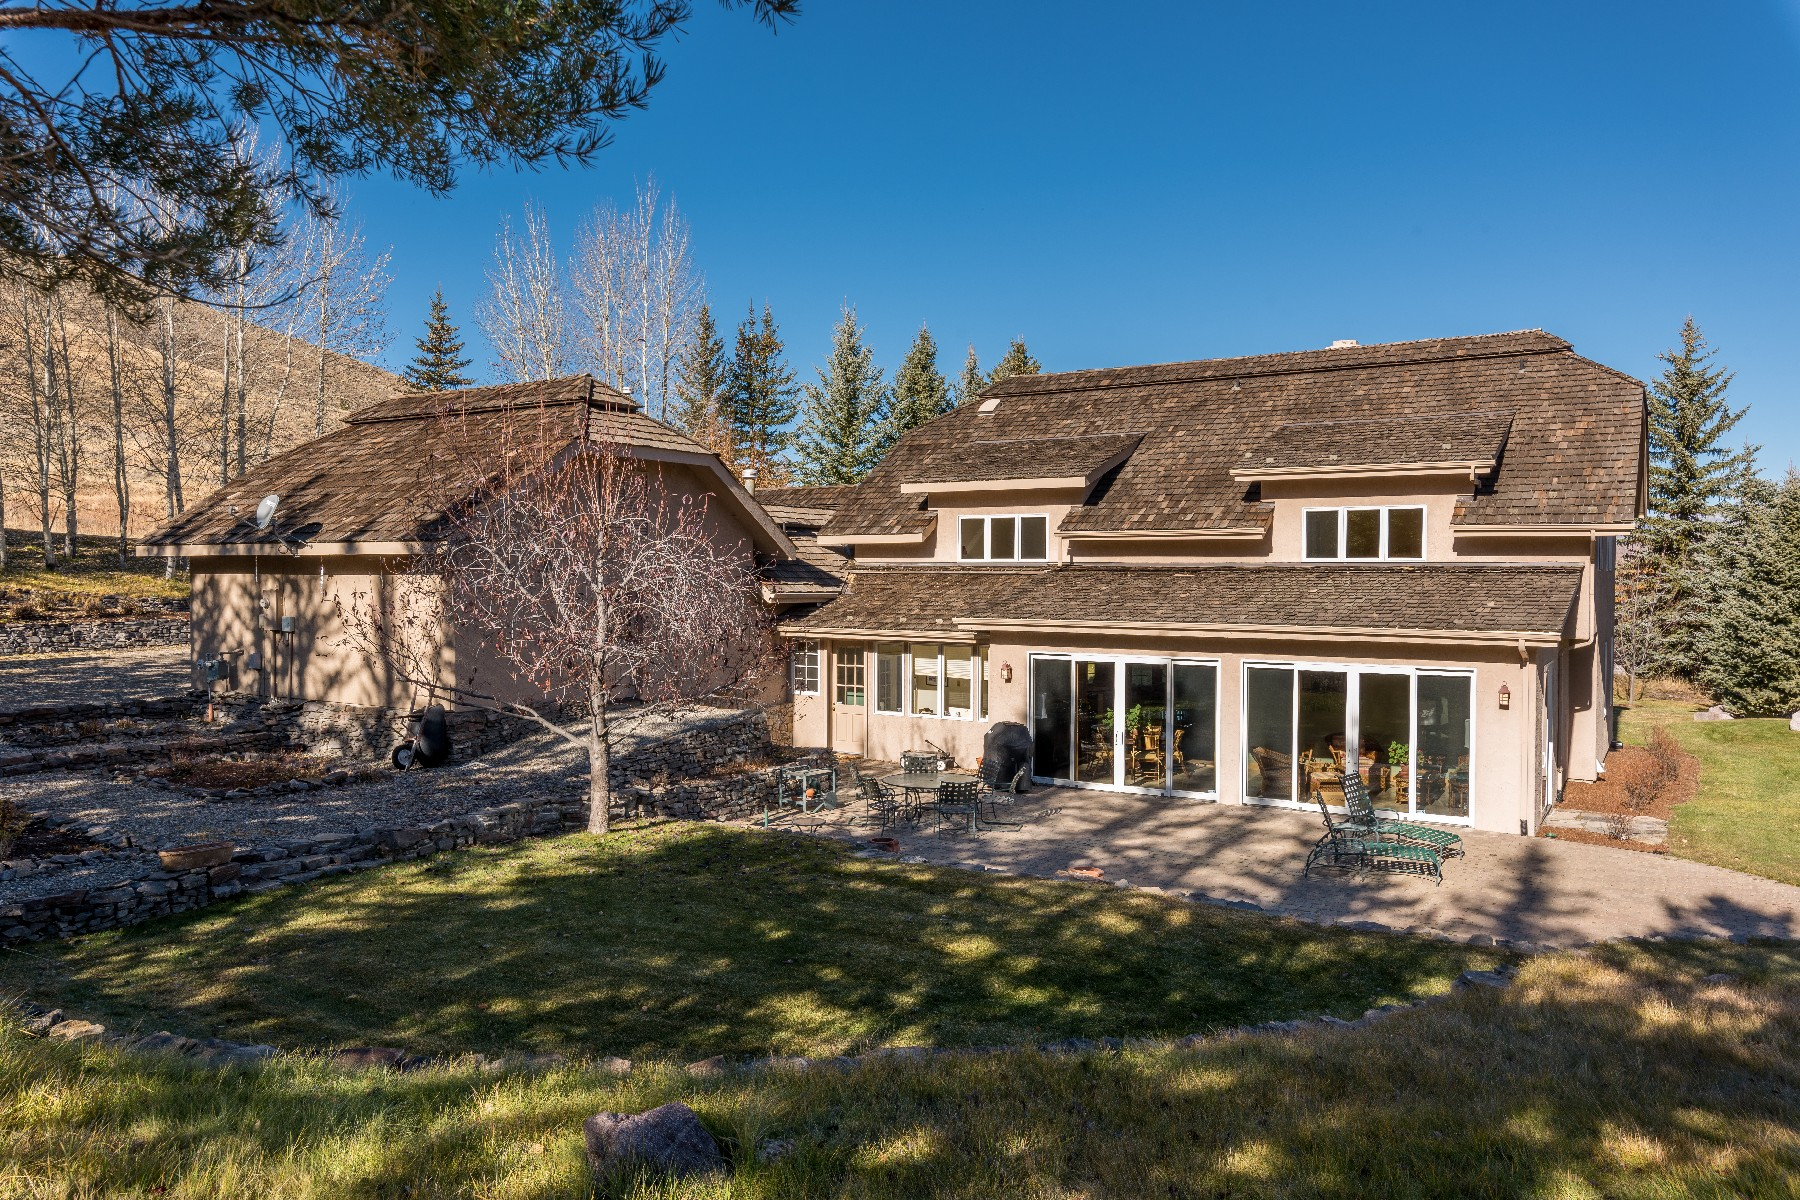 Casa Unifamiliar por un Venta en Spectacular Views 517 Juniper Rd Sun Valley, Idaho 83353 Estados Unidos